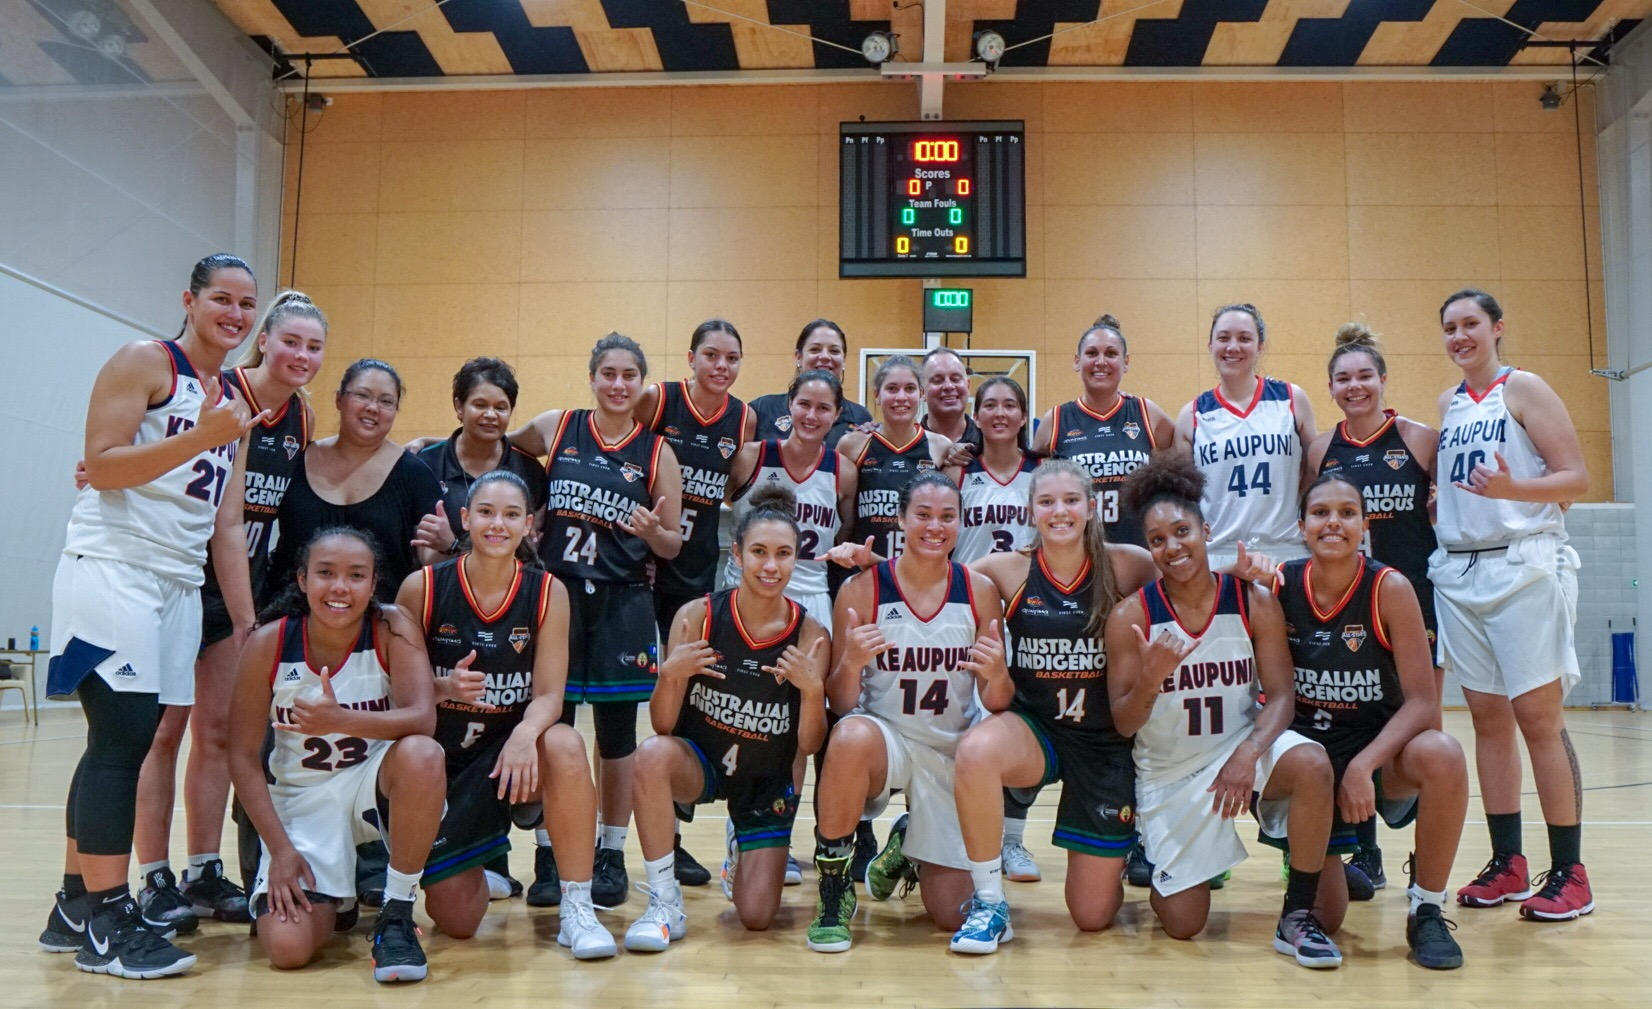 AIB women's national team pose with the Kingdom of Hawai'i women in New Zealand back in March. Picture: Luke Currie-Richardson